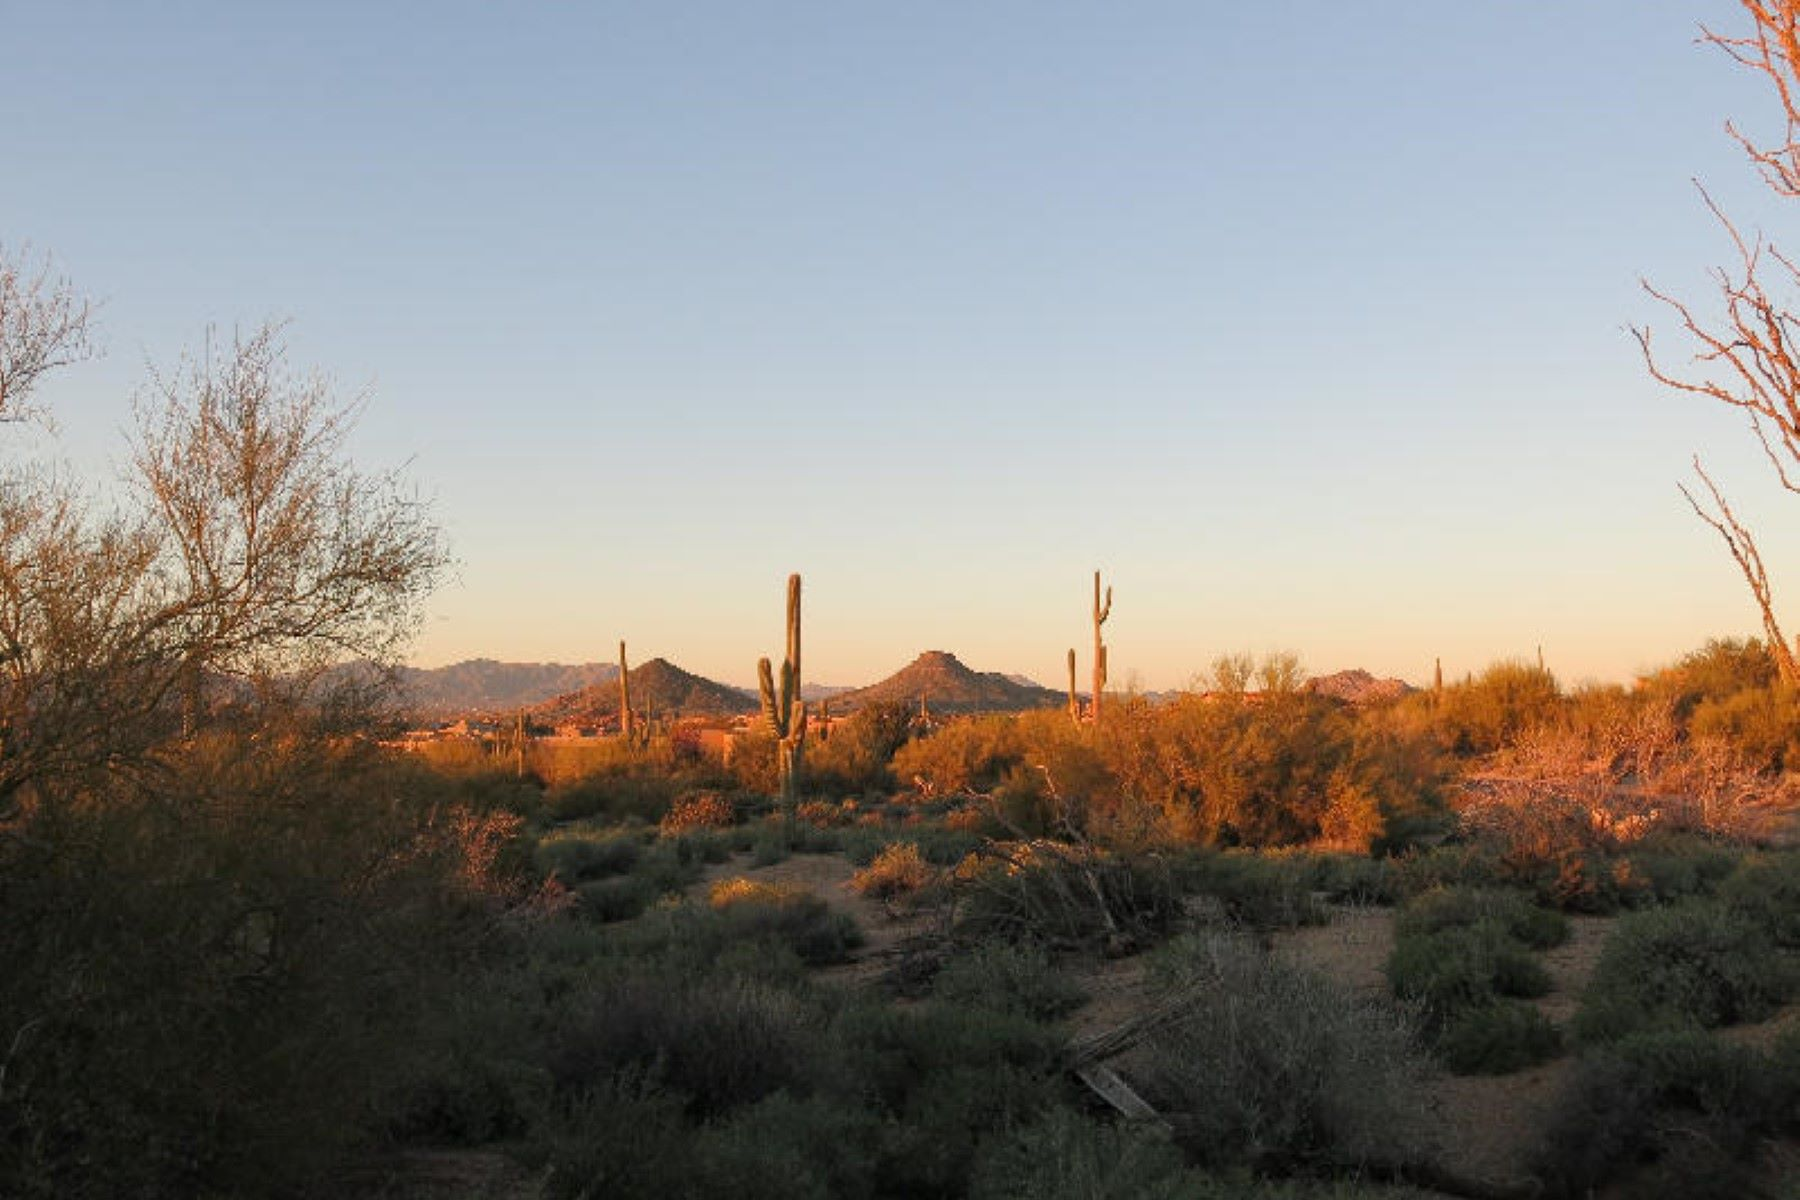 Land for Sale at Scottsdale lot on the 17th green of the renowned Estancia golf course 27986 N 103rd Pl lot 160, Scottsdale, Arizona, 85262 United States